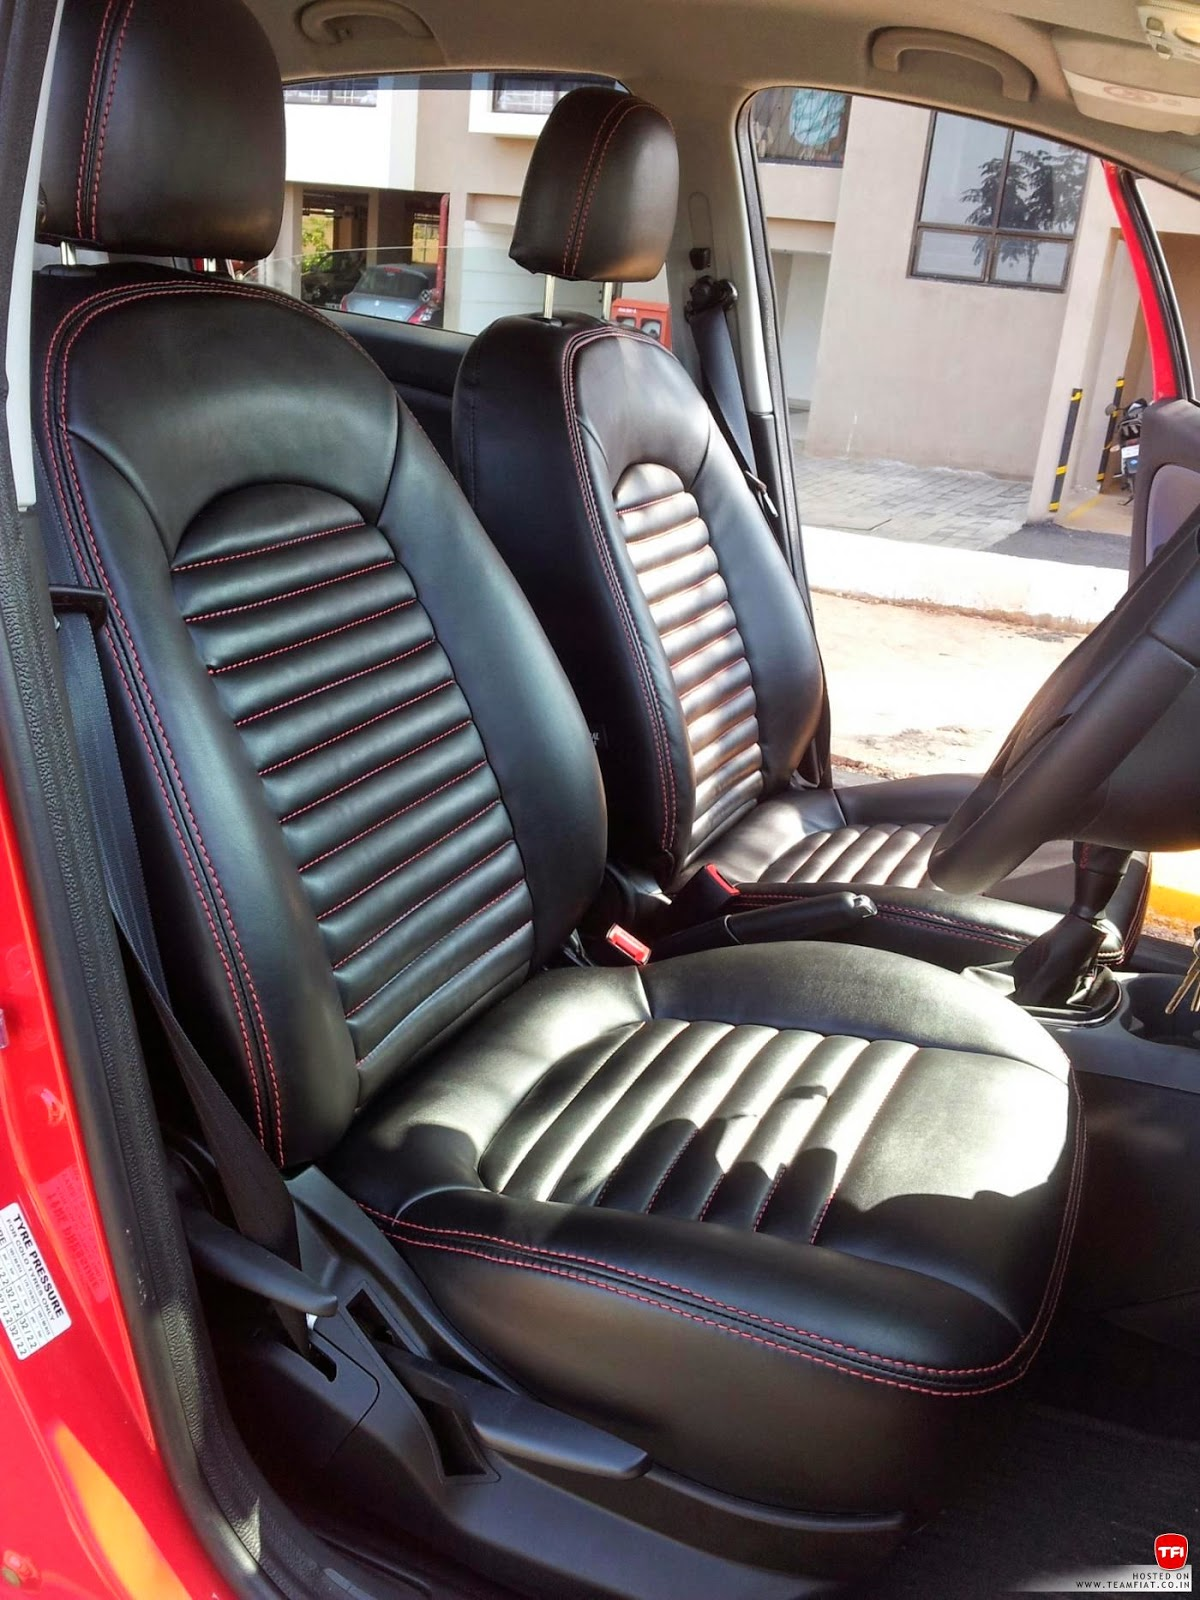 Car Seat CoversCar Seat Covers in BangaloreLeather Car